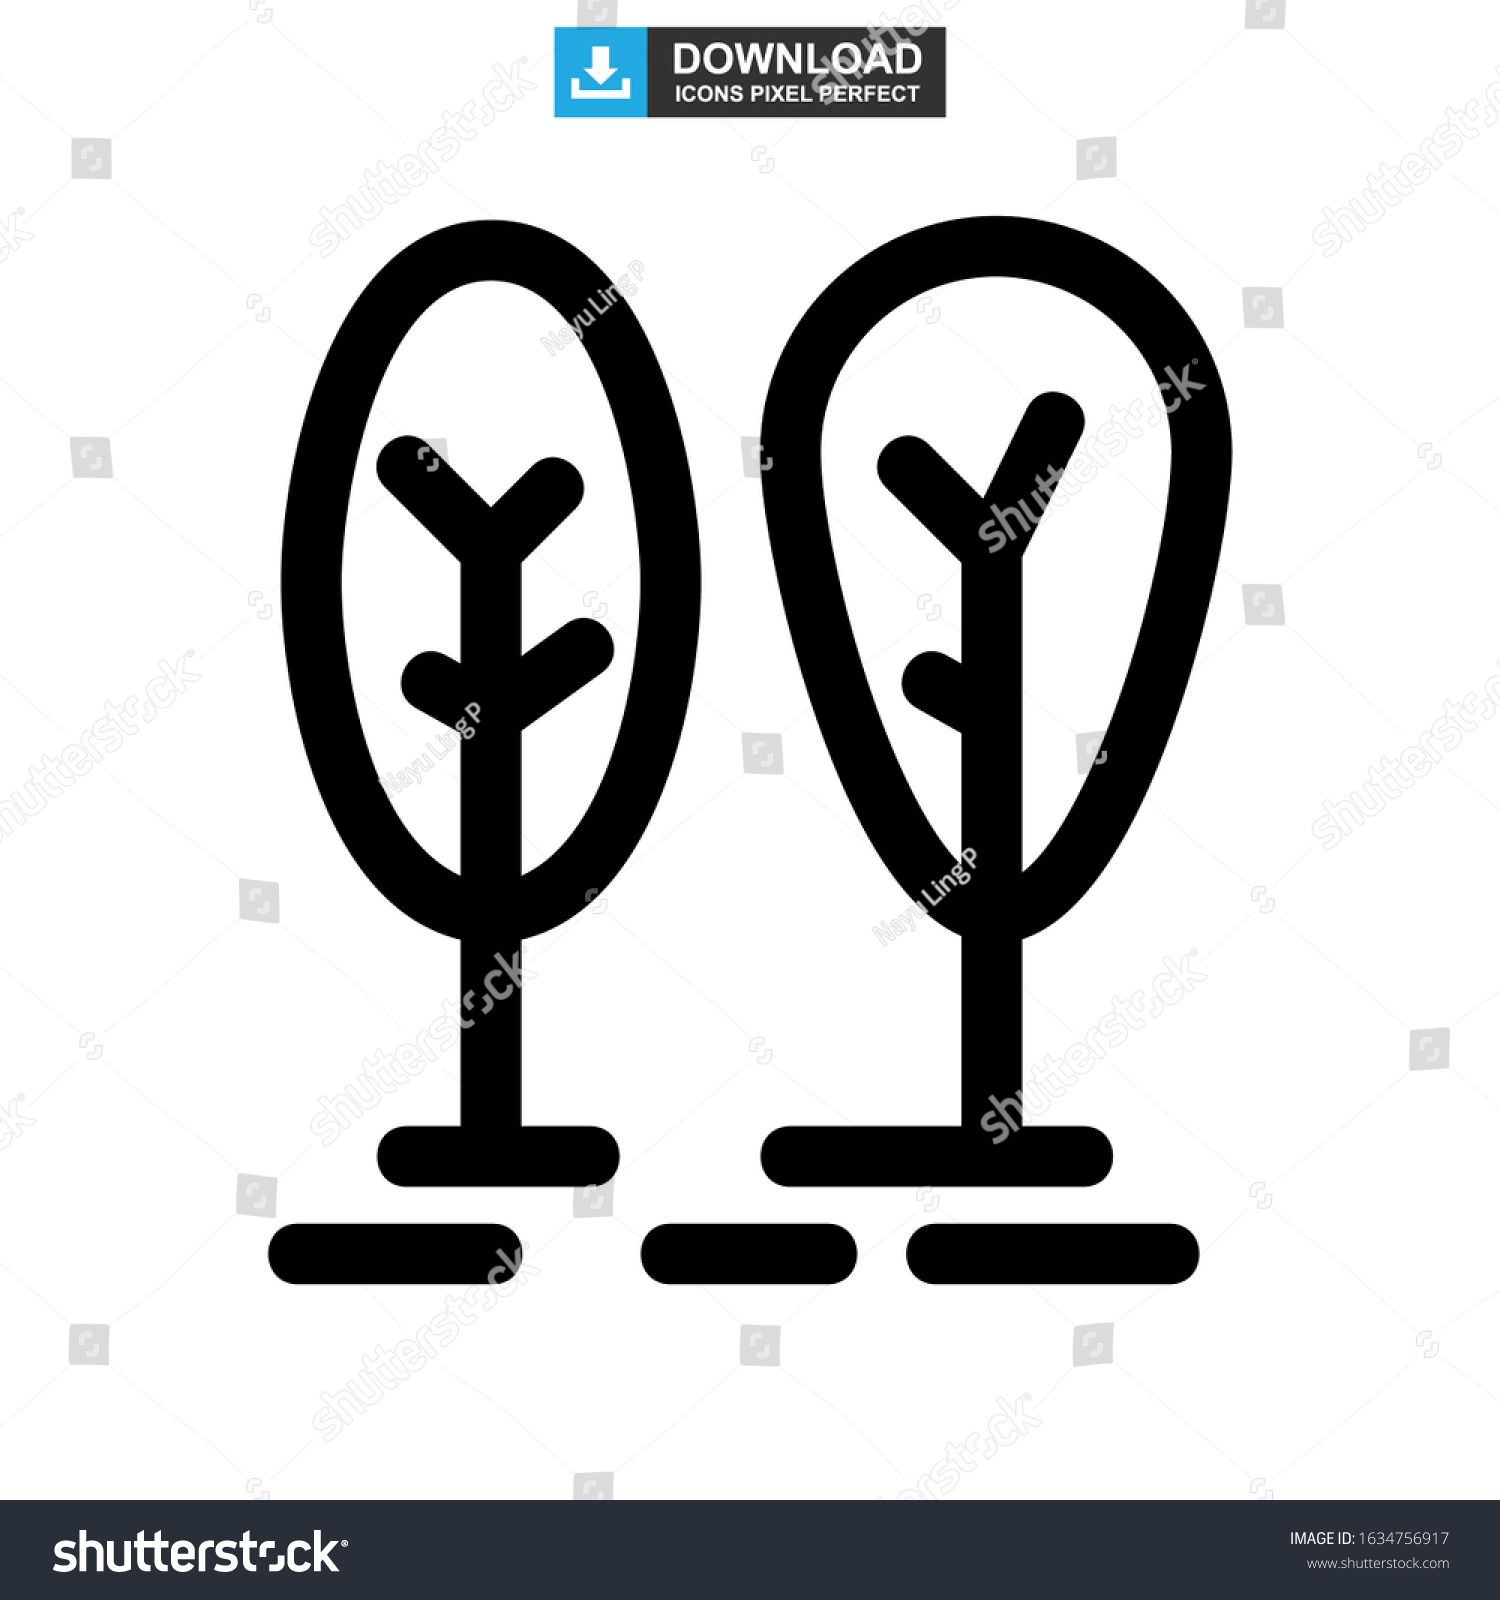 Forest Icon Or Logo Isolated Sign Symbol Vector Illustration High Quality Black Style Vector Icons N Ad Ad Isolated Symbols Icon Business Icons Design